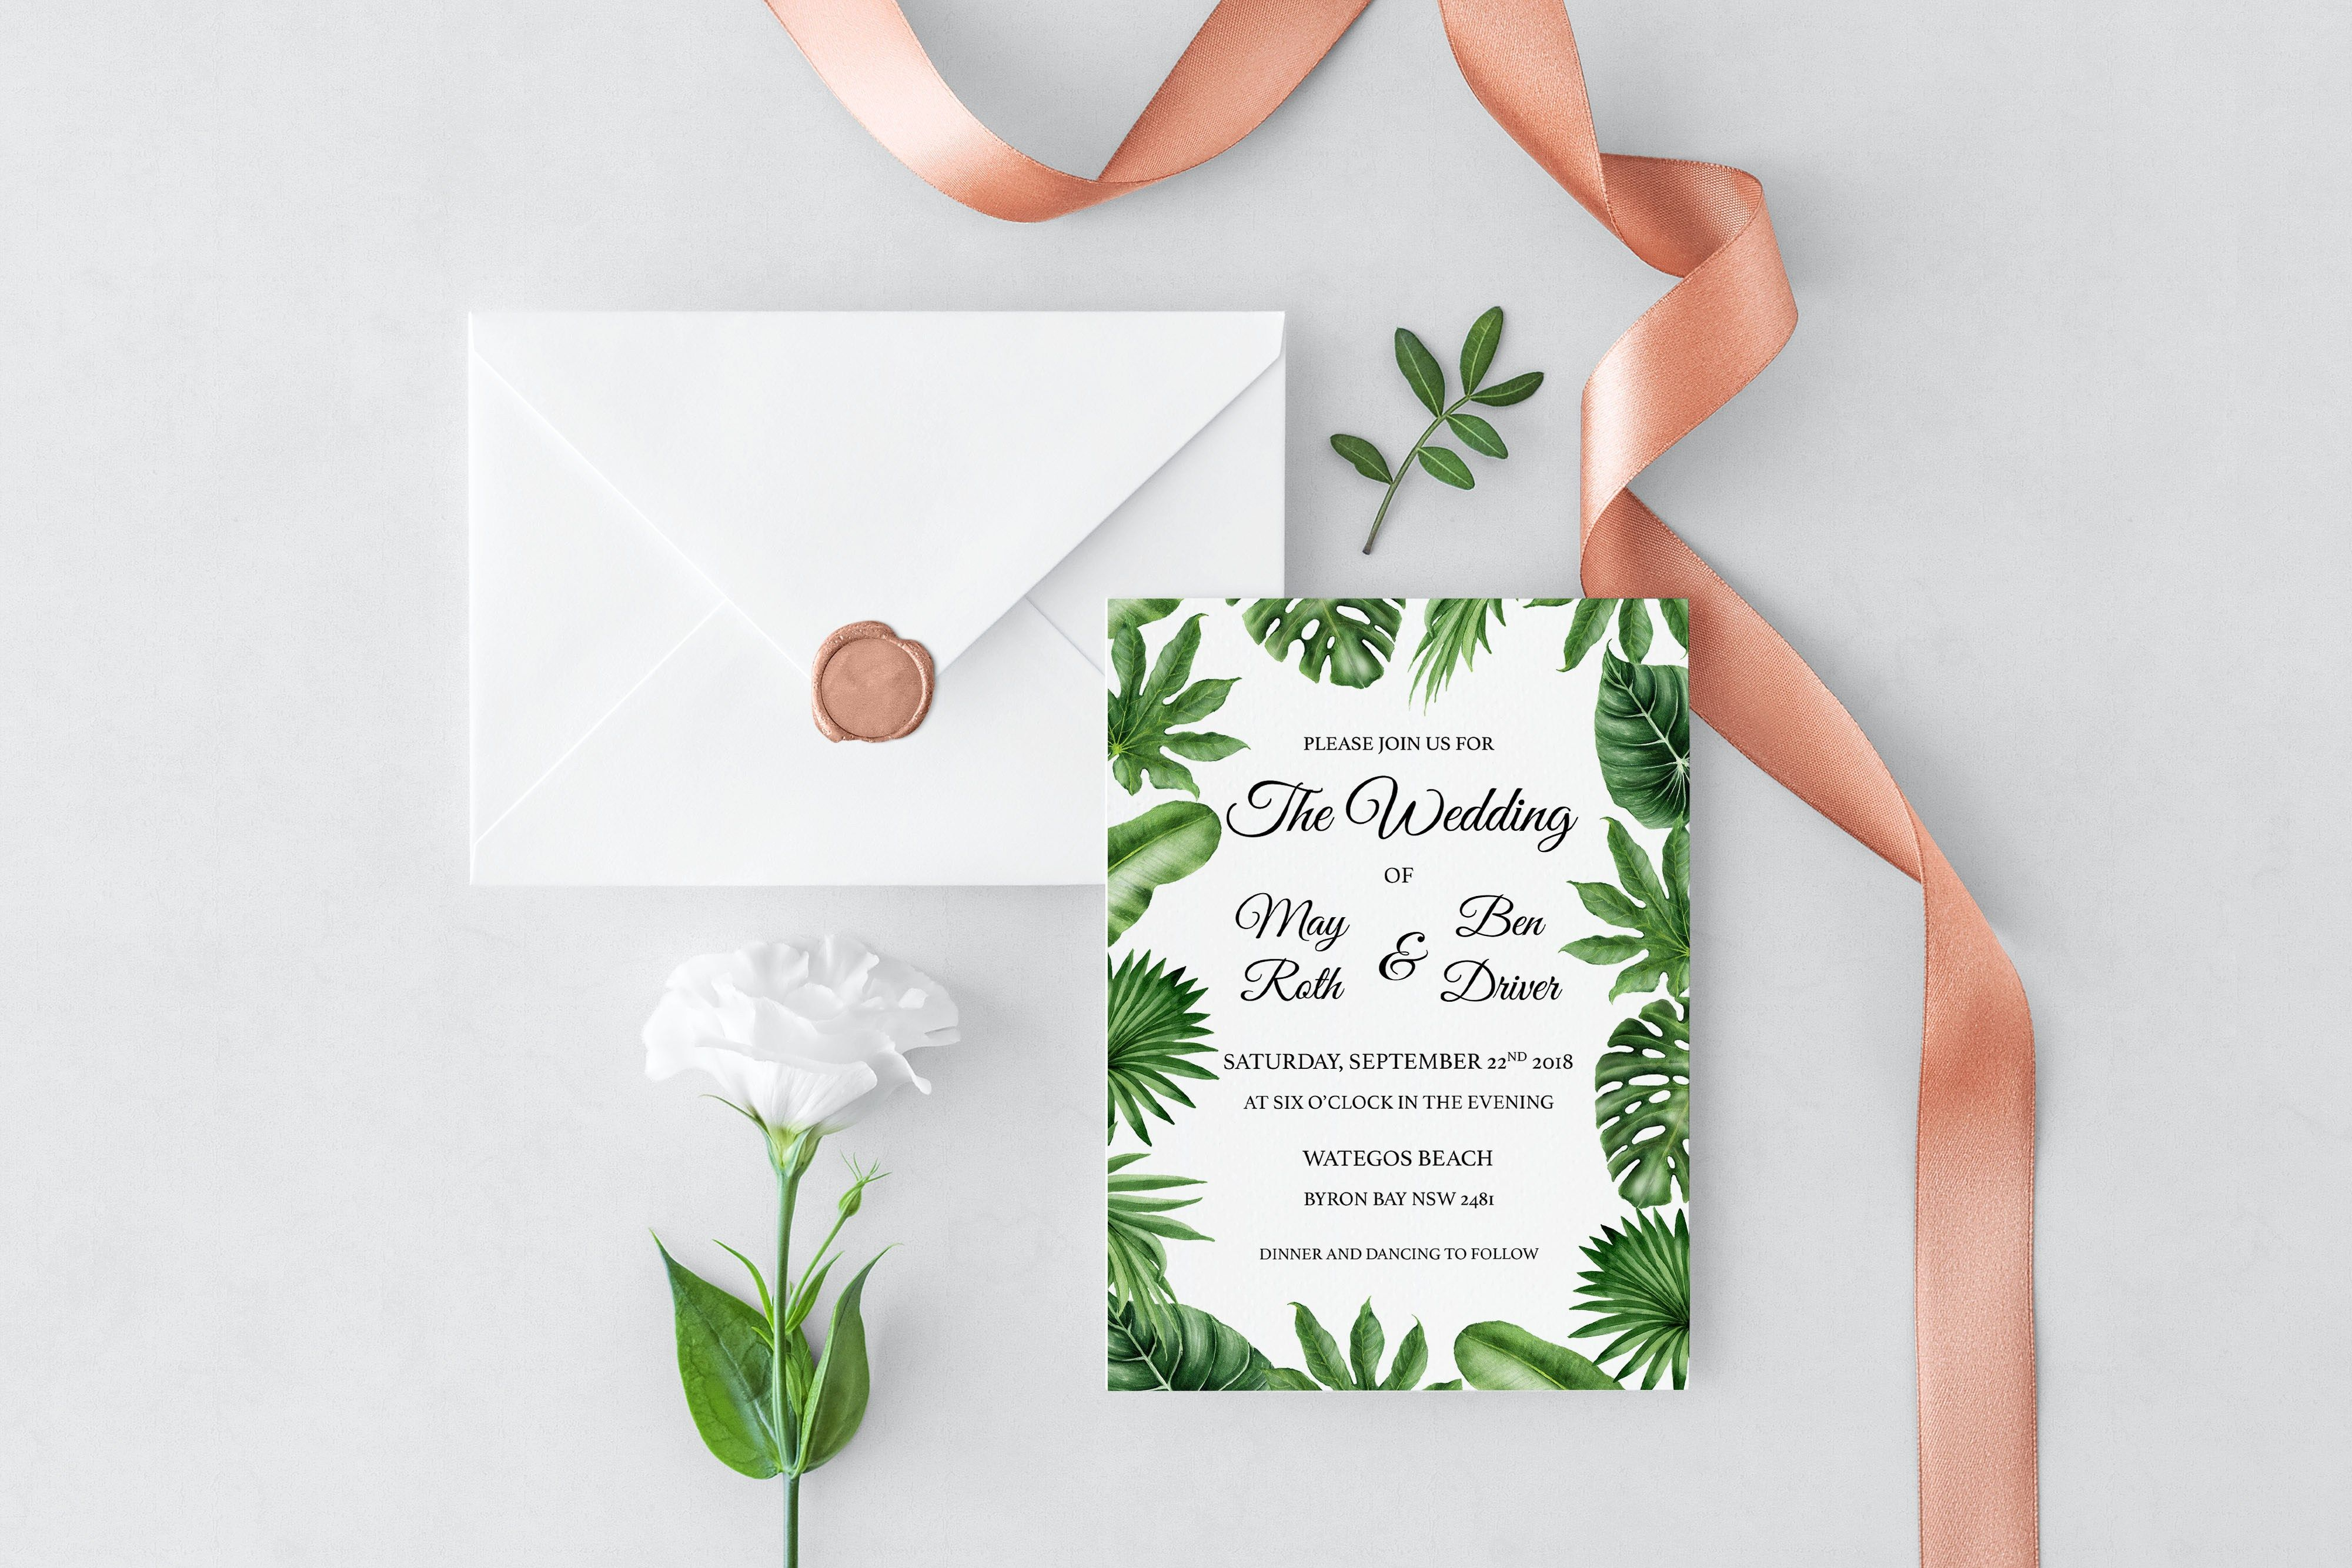 destination wedding invitation rsvp date%0A Our Tropical Leaves Wedding Invitation is the perfect design for a  boho rustic beach